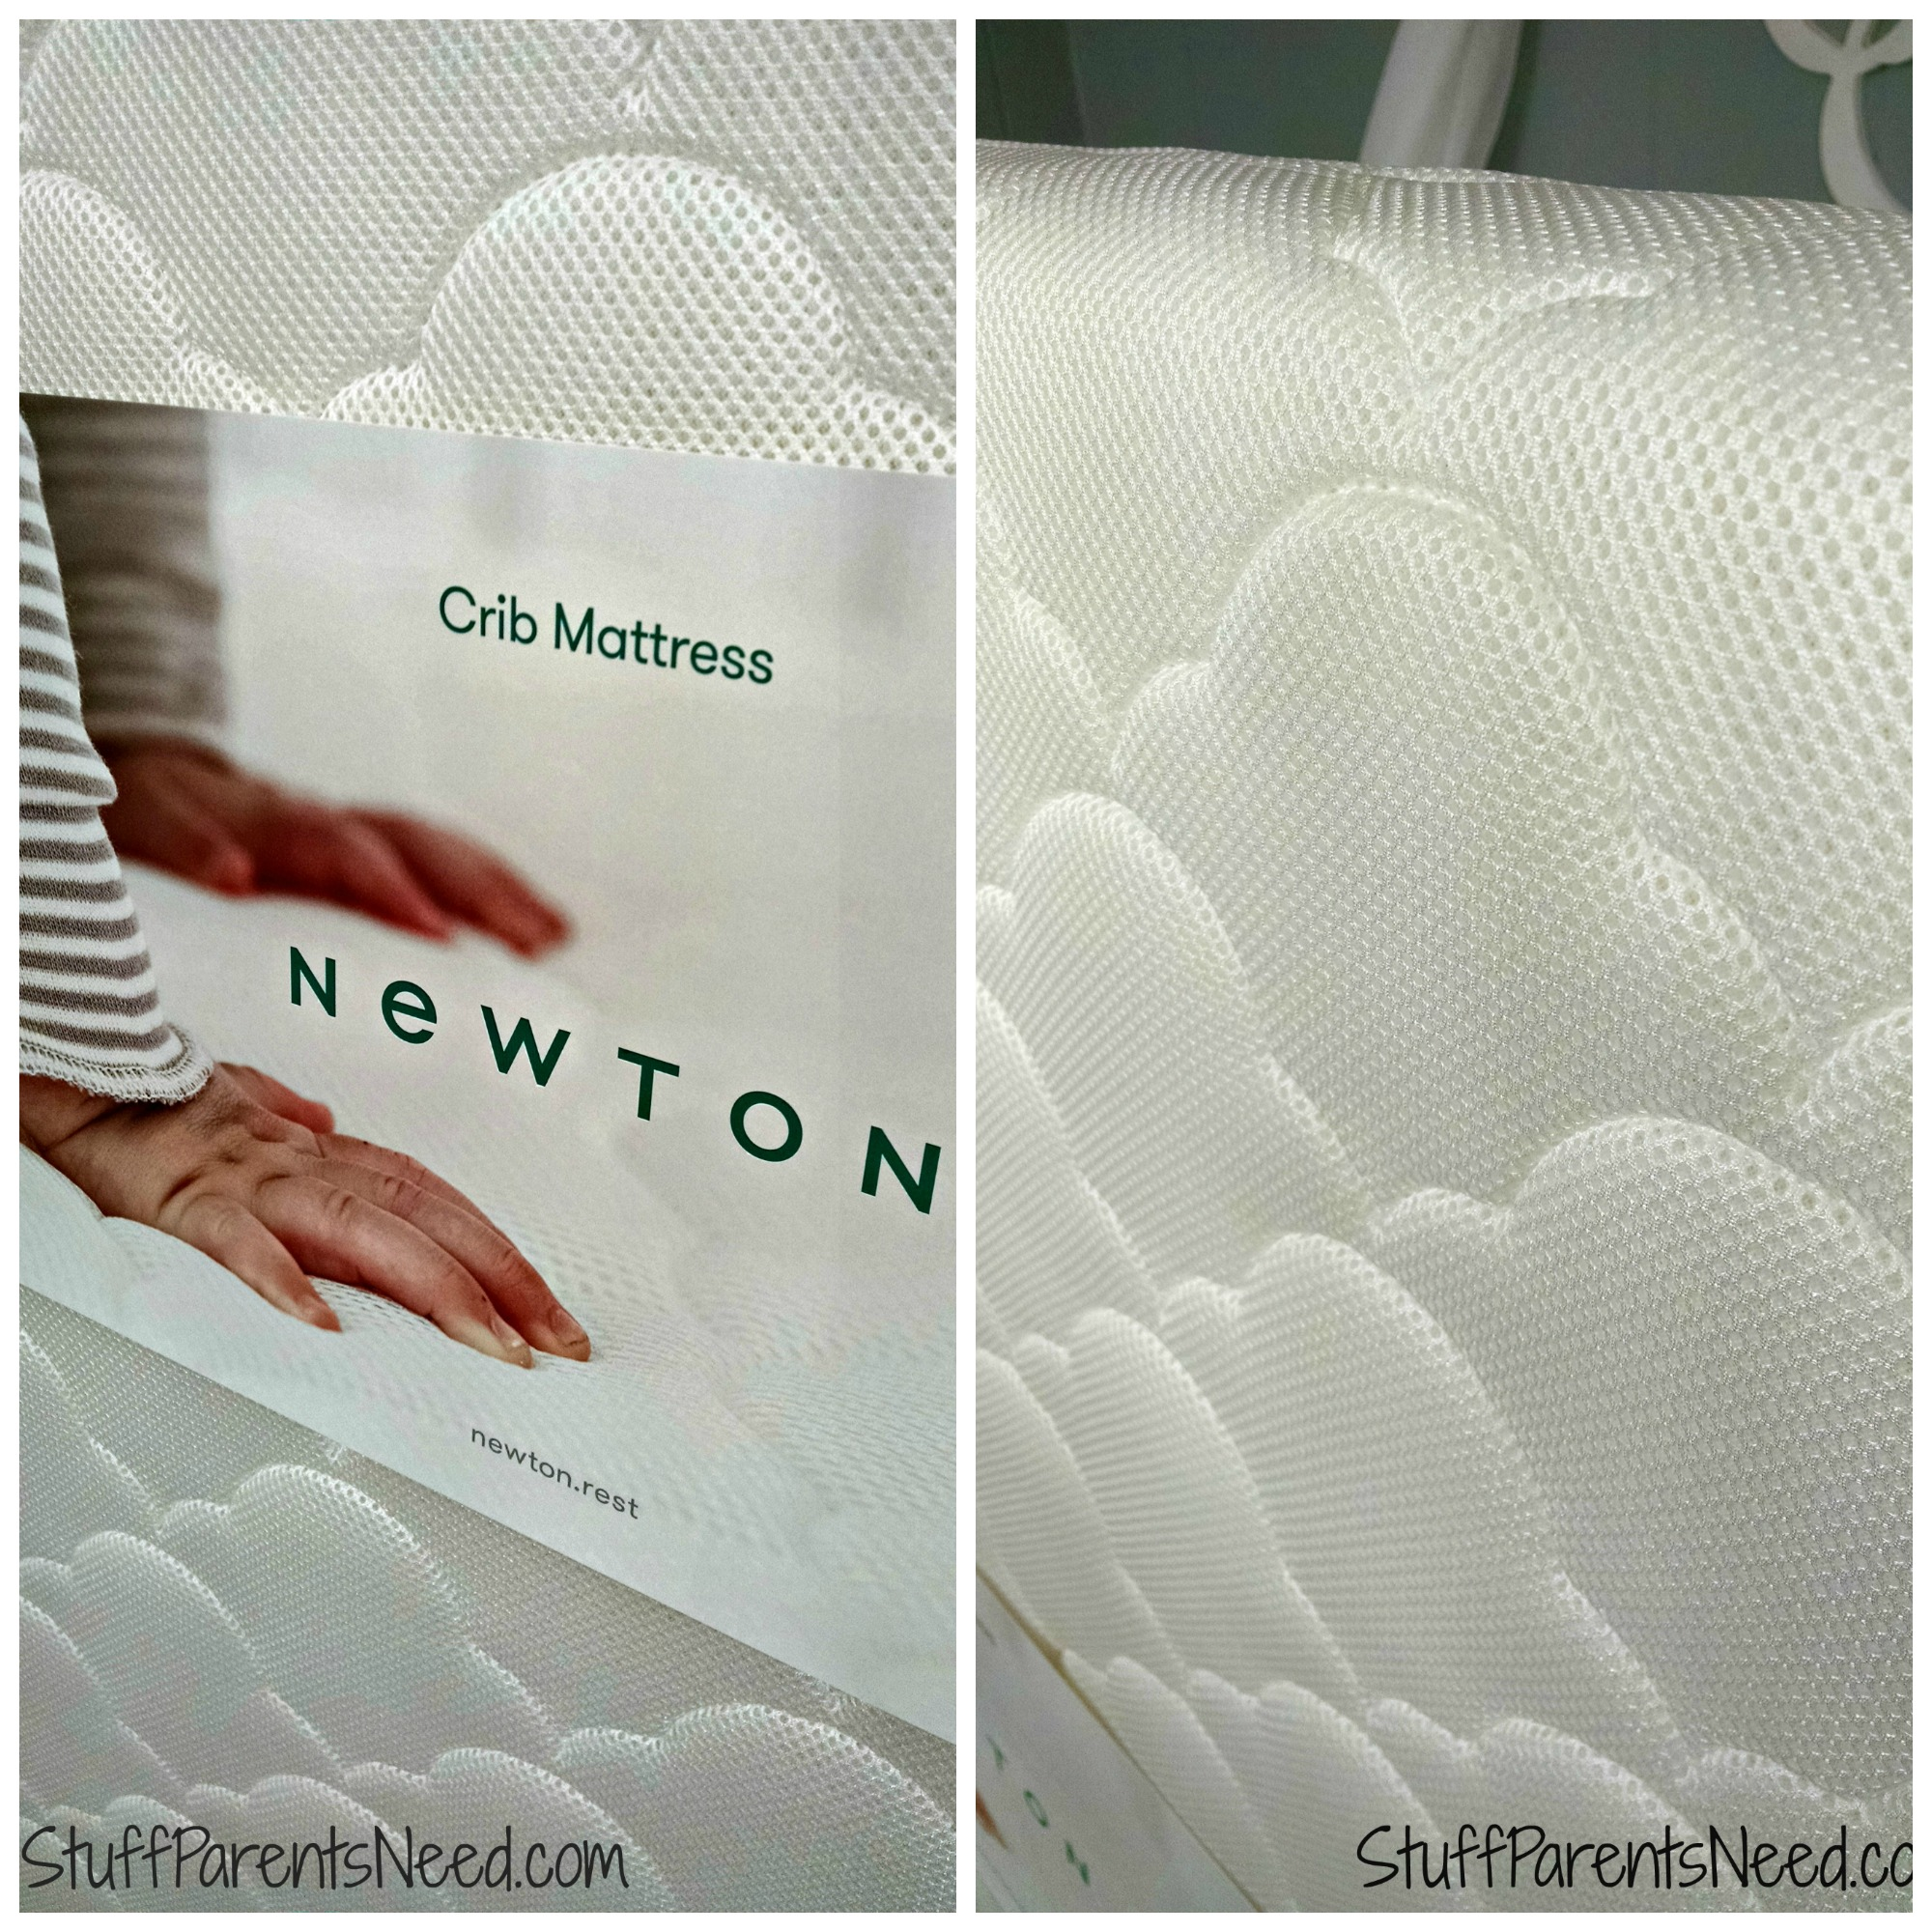 Newton Breathable Mattress Reviews The One Nursery Item You Should Research More Carefully